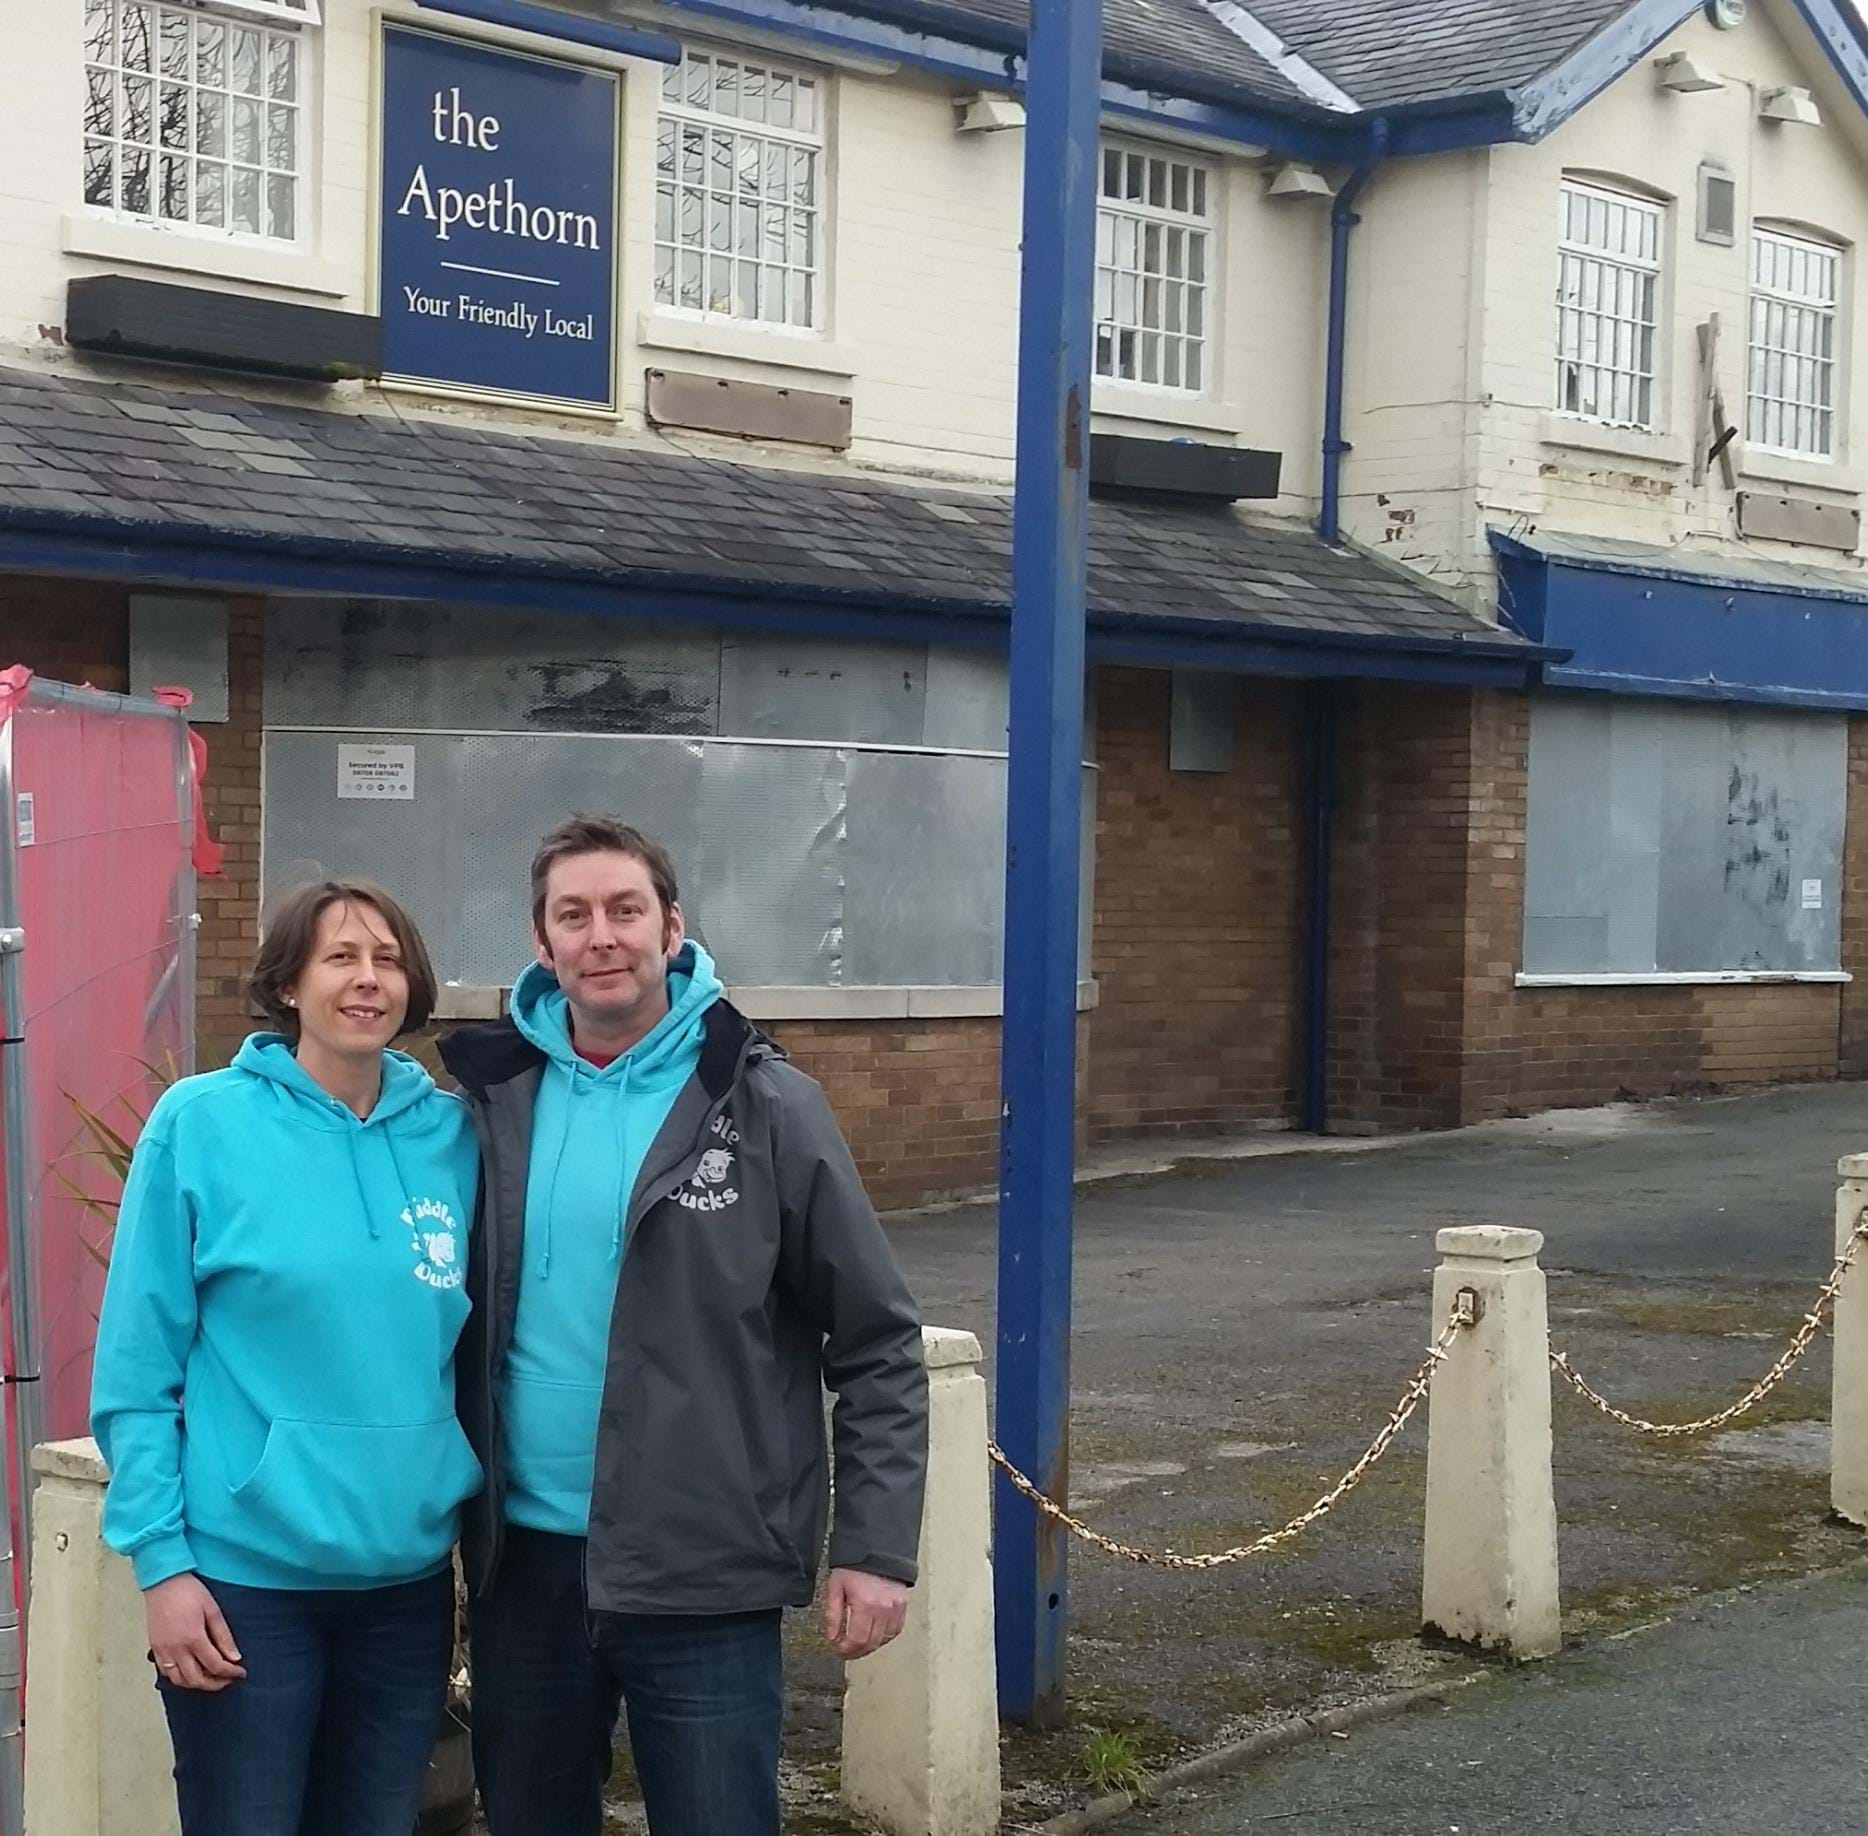 Pub to take on new 'watering hole' status